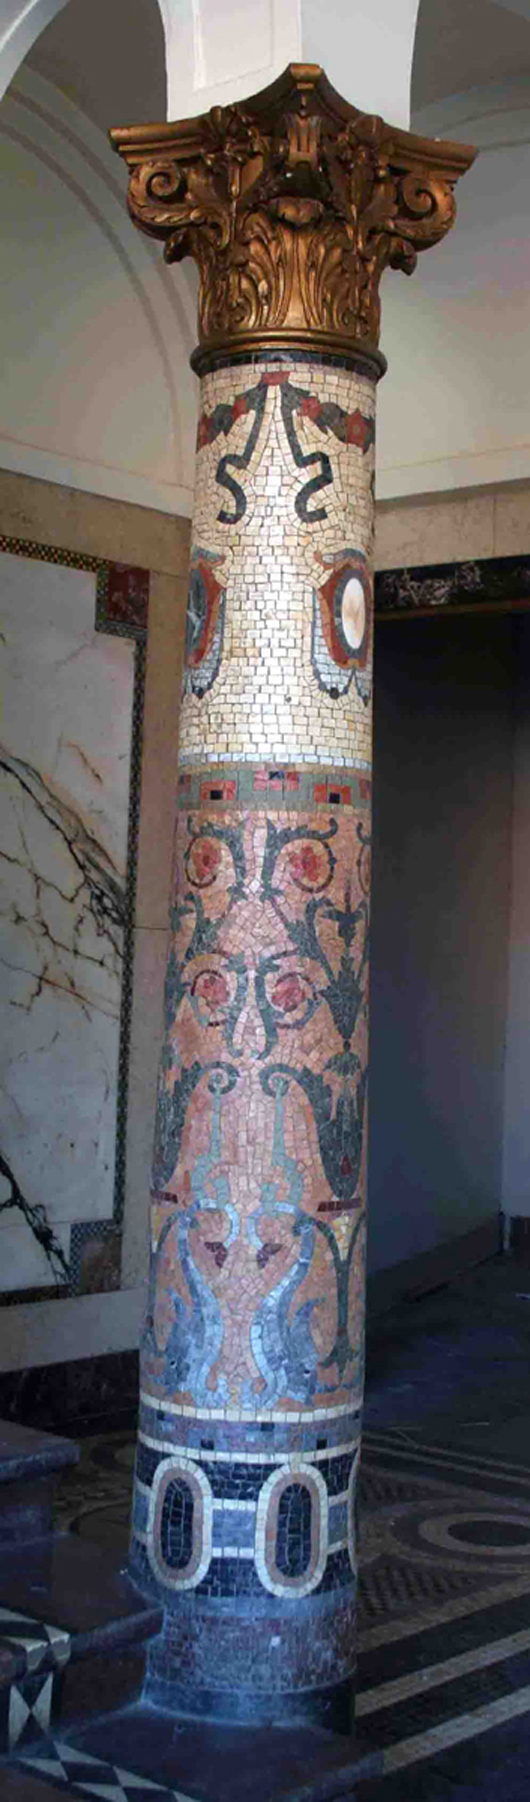 One of a pair of mosaic columns salvaged. Image courtesy of Wooden Nickel Antiques.